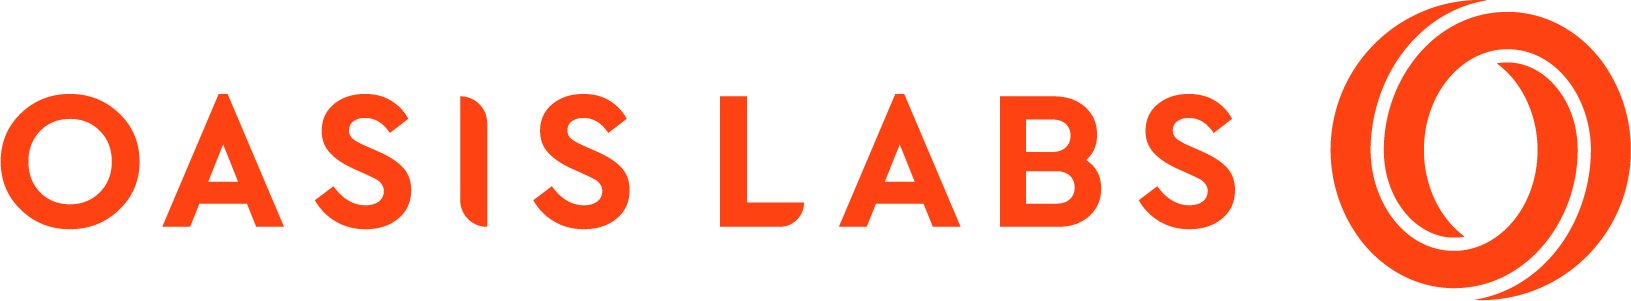 OasisLabs_Primary_Logo_Red_RGB.png